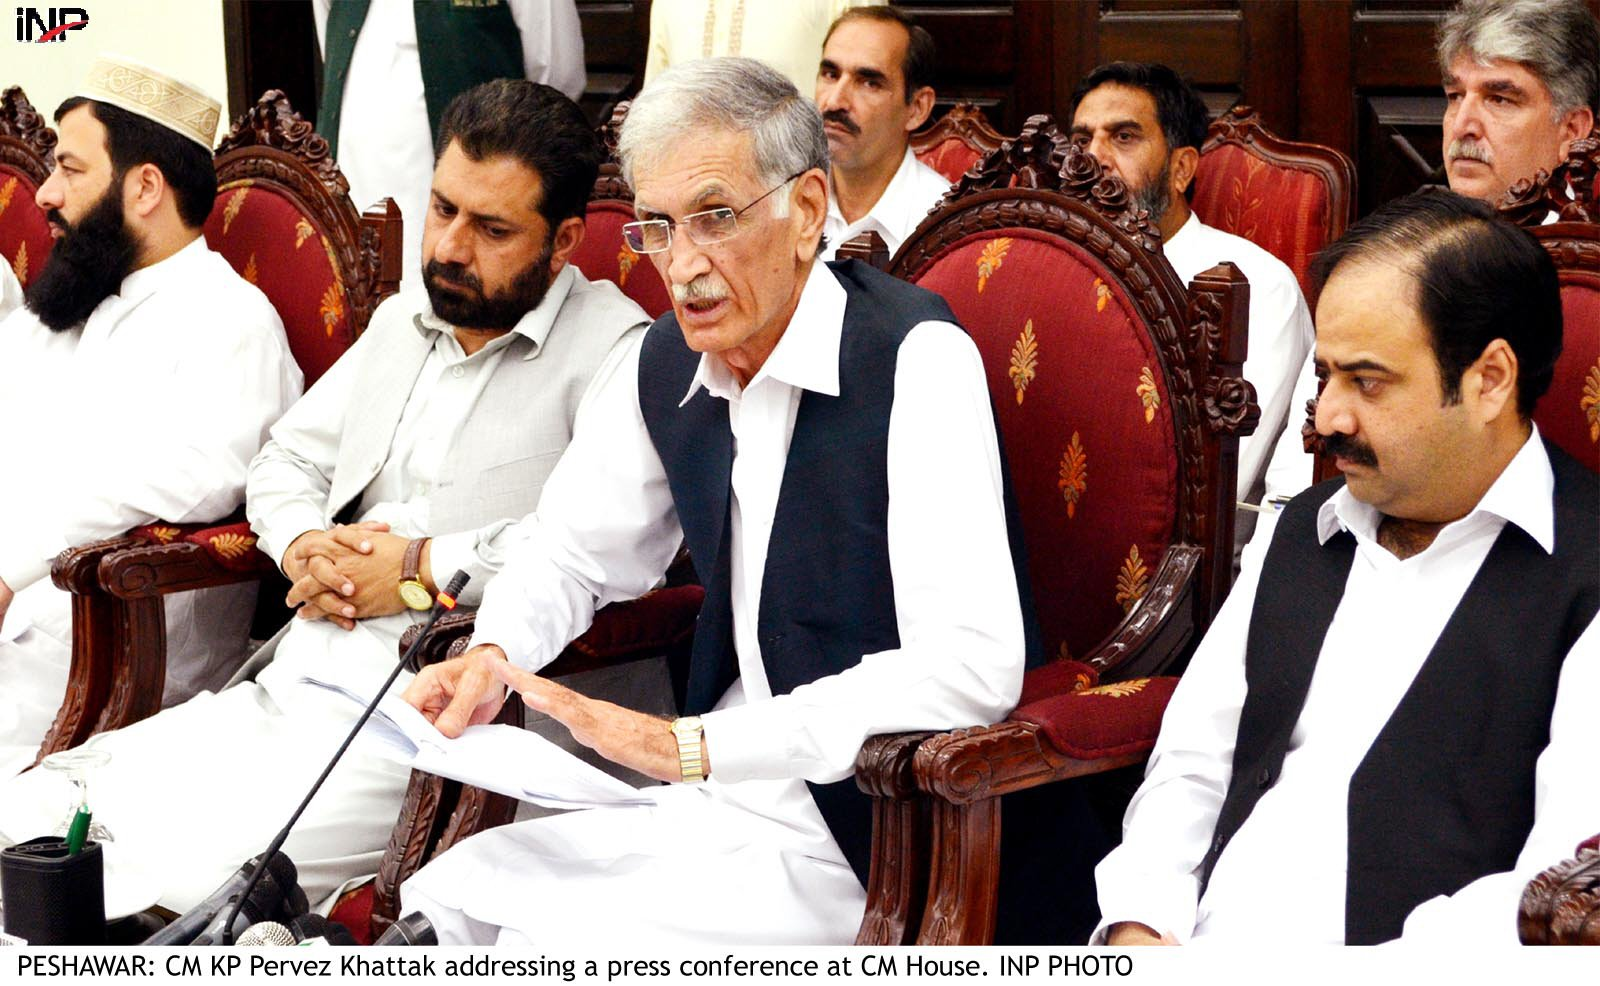 k p caretaker cm to be decided by parliamentary committee